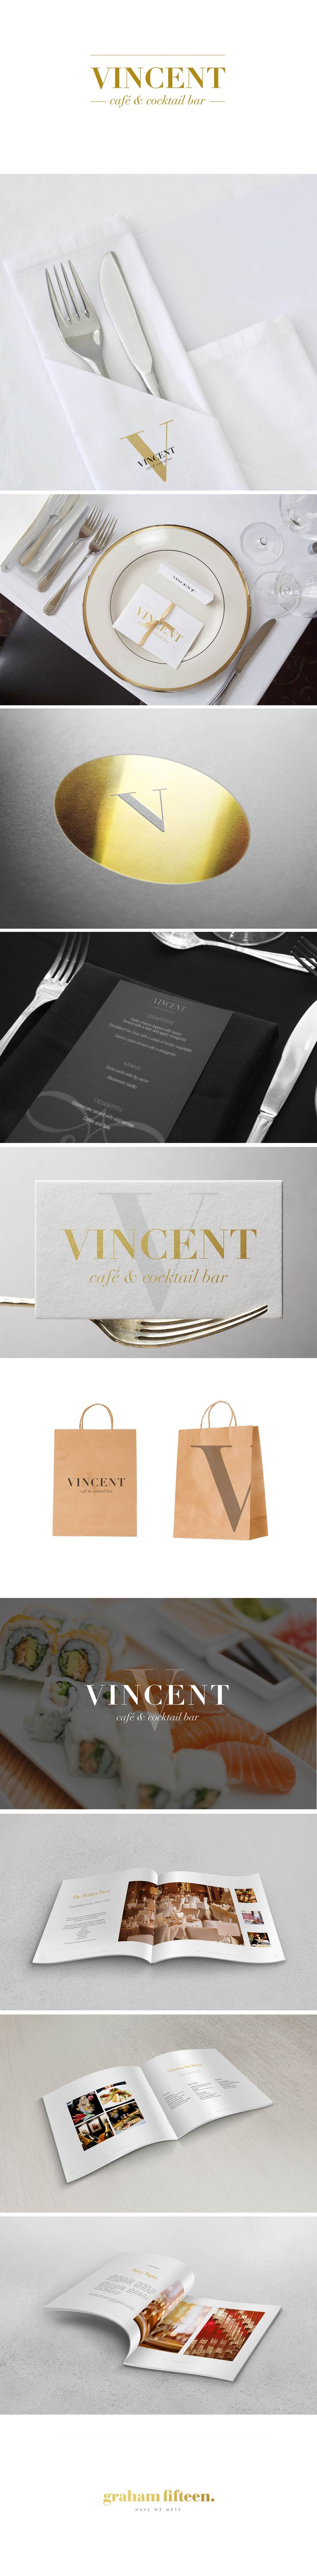 A black, white and gold colour scheme allowed Graham Fifteen to maintain a finesse throughout the image of the cocktail bar sector of Vincent yet the paper bags and earthy tones allowed the cafe aspect to remain relaxed. Minimalism is key in this design. #GrahamFifteen #branding #design #creative #marketing #Liverpool #food #drink #image